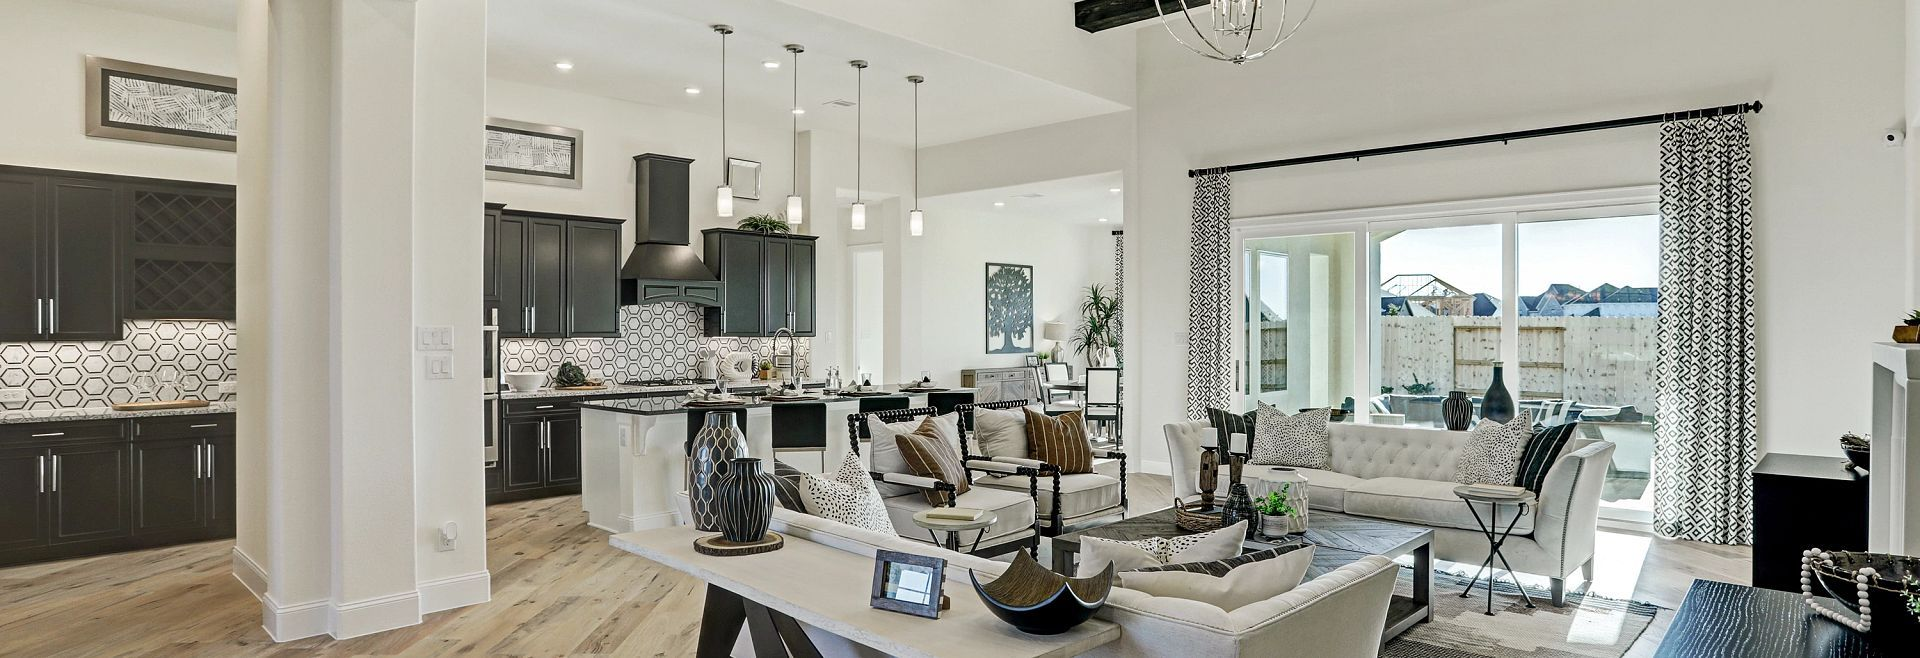 'Del Bello Lakes 70 Series' by Shea Homes - Family - Houston in Houston